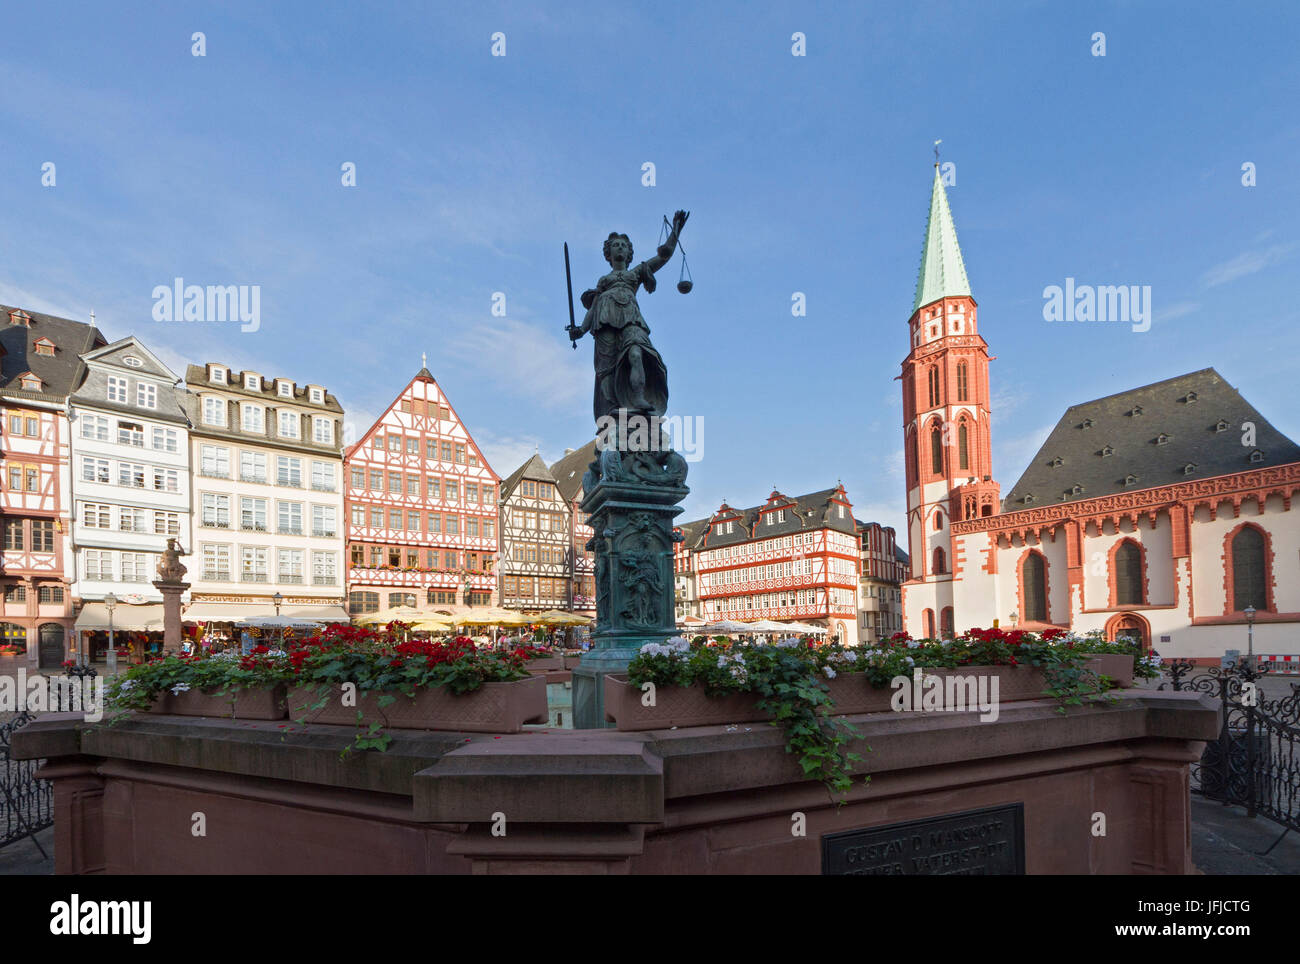 The Romerberg square with Justice statue in the center and the San Nicola Church, Frankfurt, Germany - Stock Image